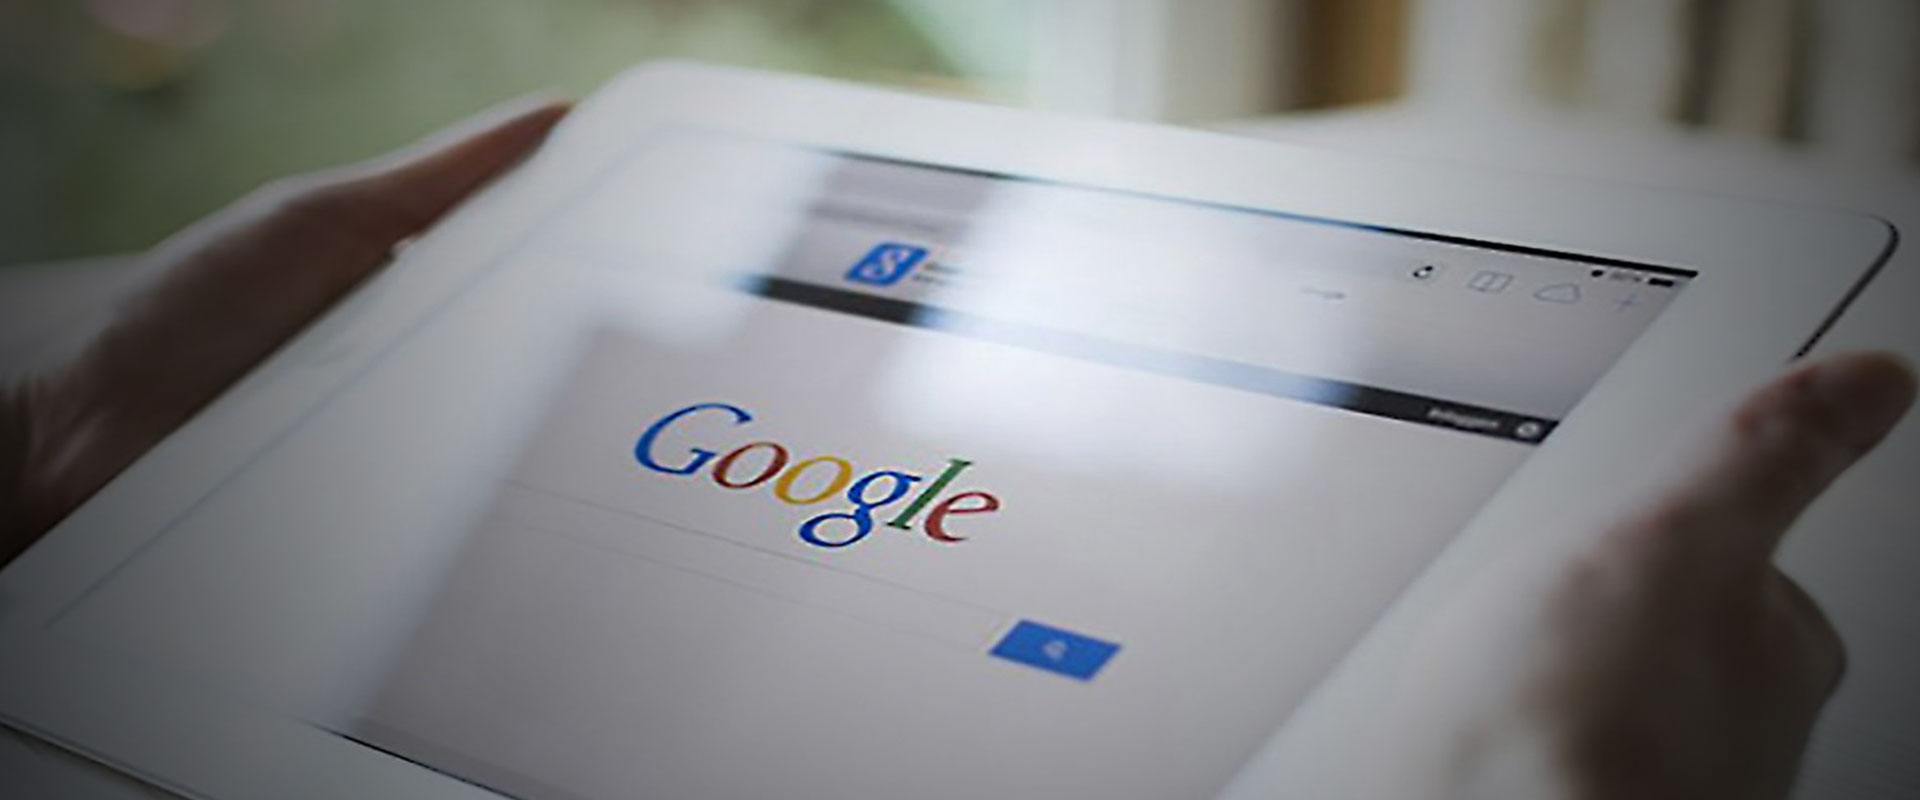 Posicionamiento SEO search engine optimization - como llegar a primeras ubicaciones en Google